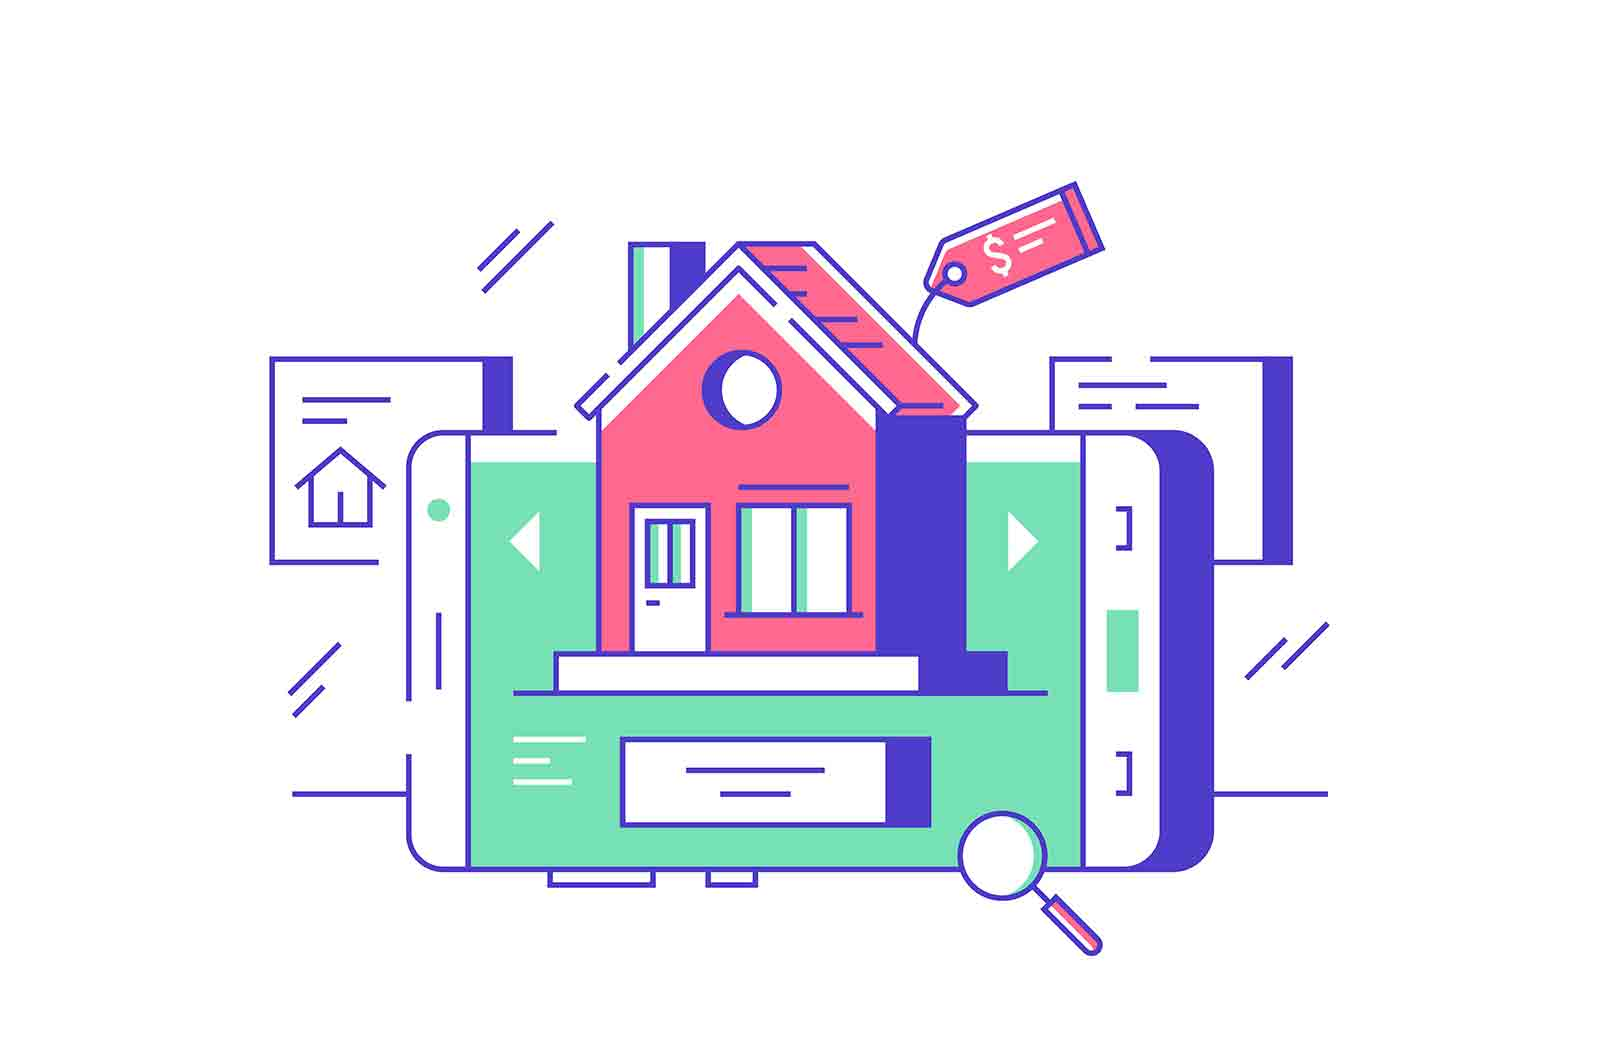 Real estate online sale or rent vector illustration. Sale, purchase, rent, mortgage house online on smartphone flat style. Network marketing agency, remote choice concept. Isolated on white background